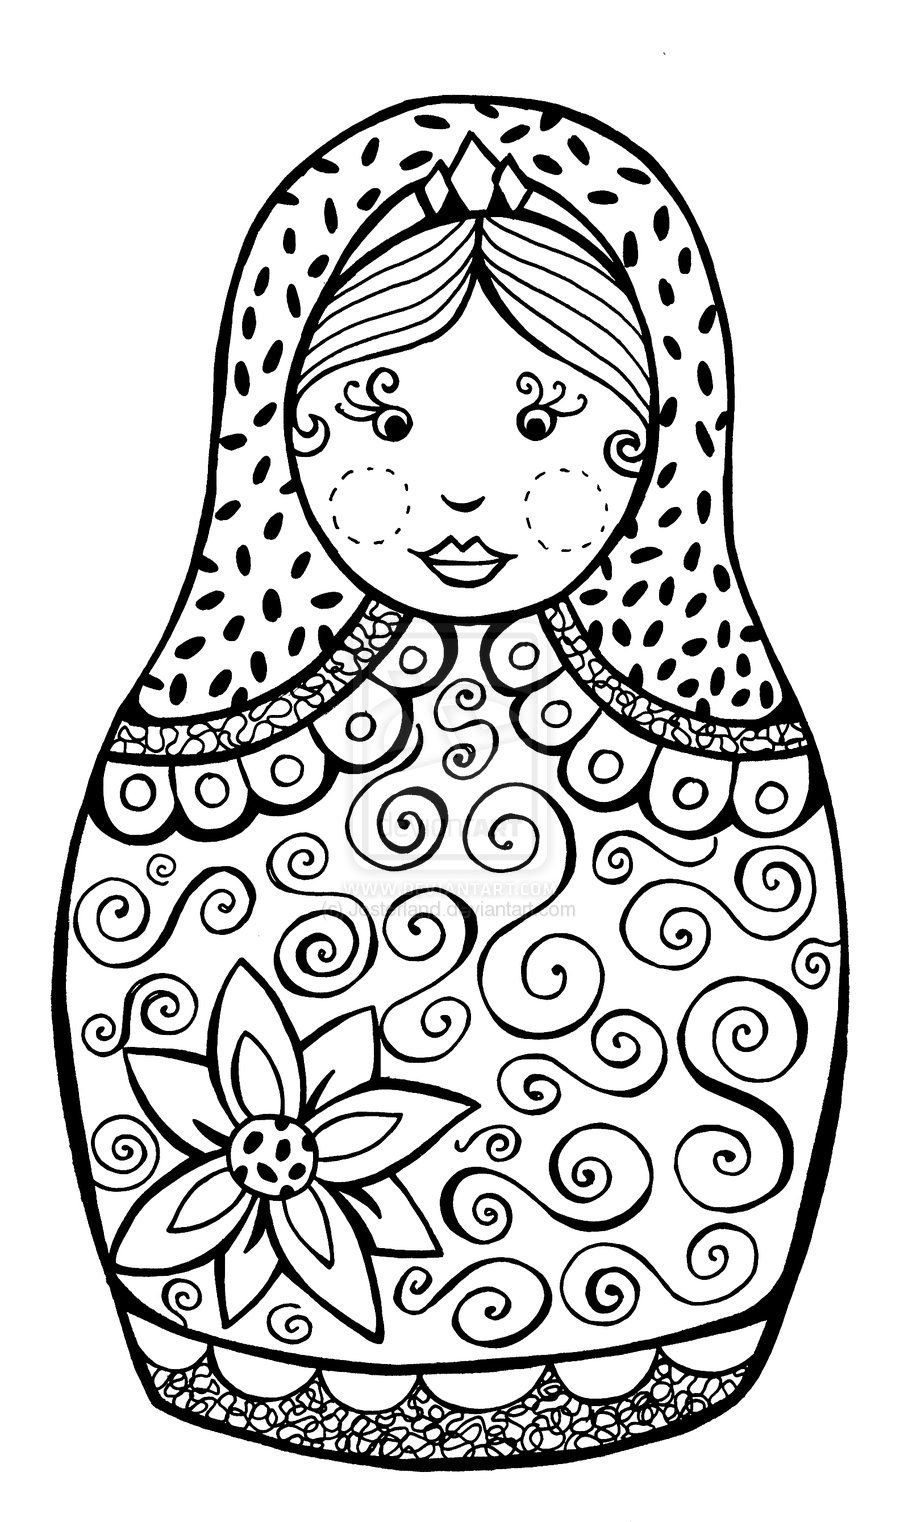 Babushka-fun coloring page | Adult and Children\'s Coloring Pages ...